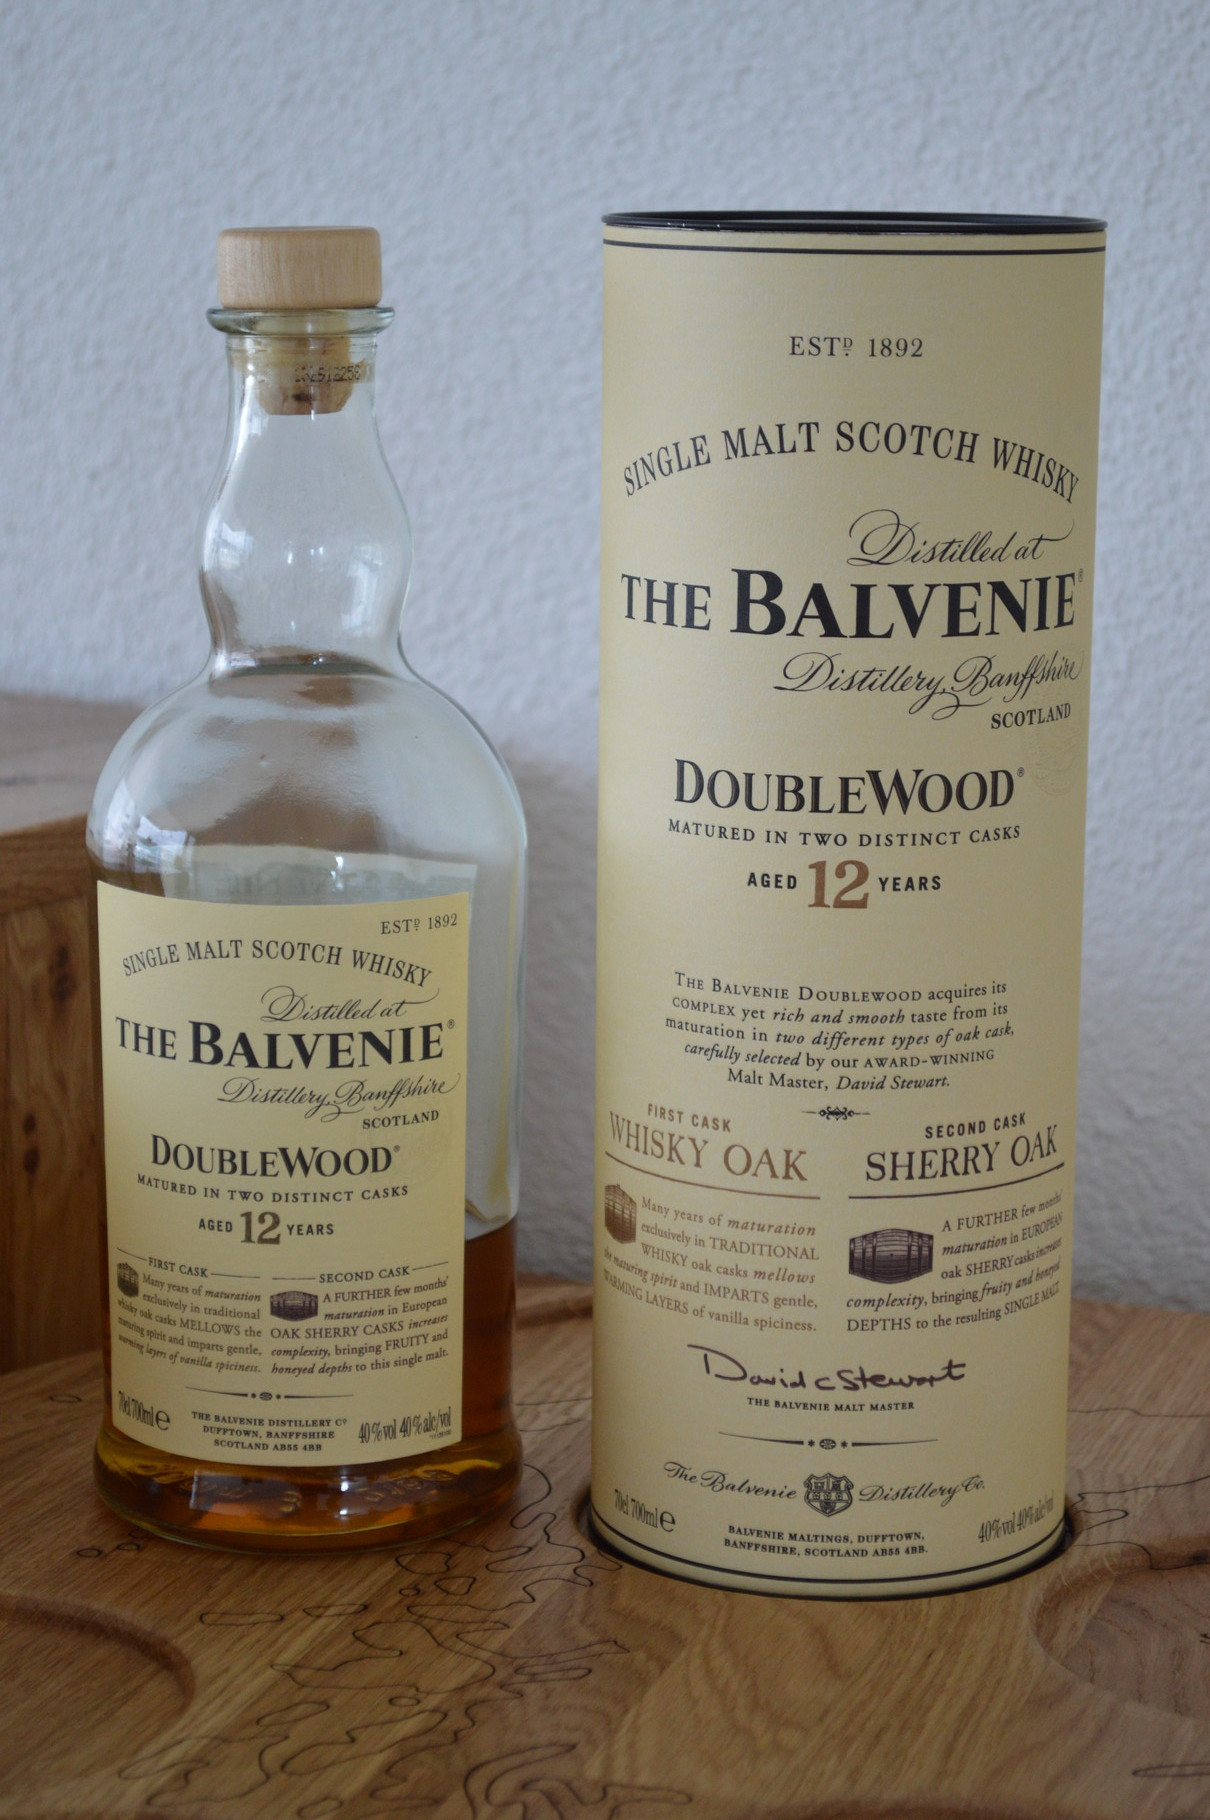 SPEYSIDE - The Balvenie* - Aged: 12 years - Bottler: Original - 70cl - 40% - Double Wood